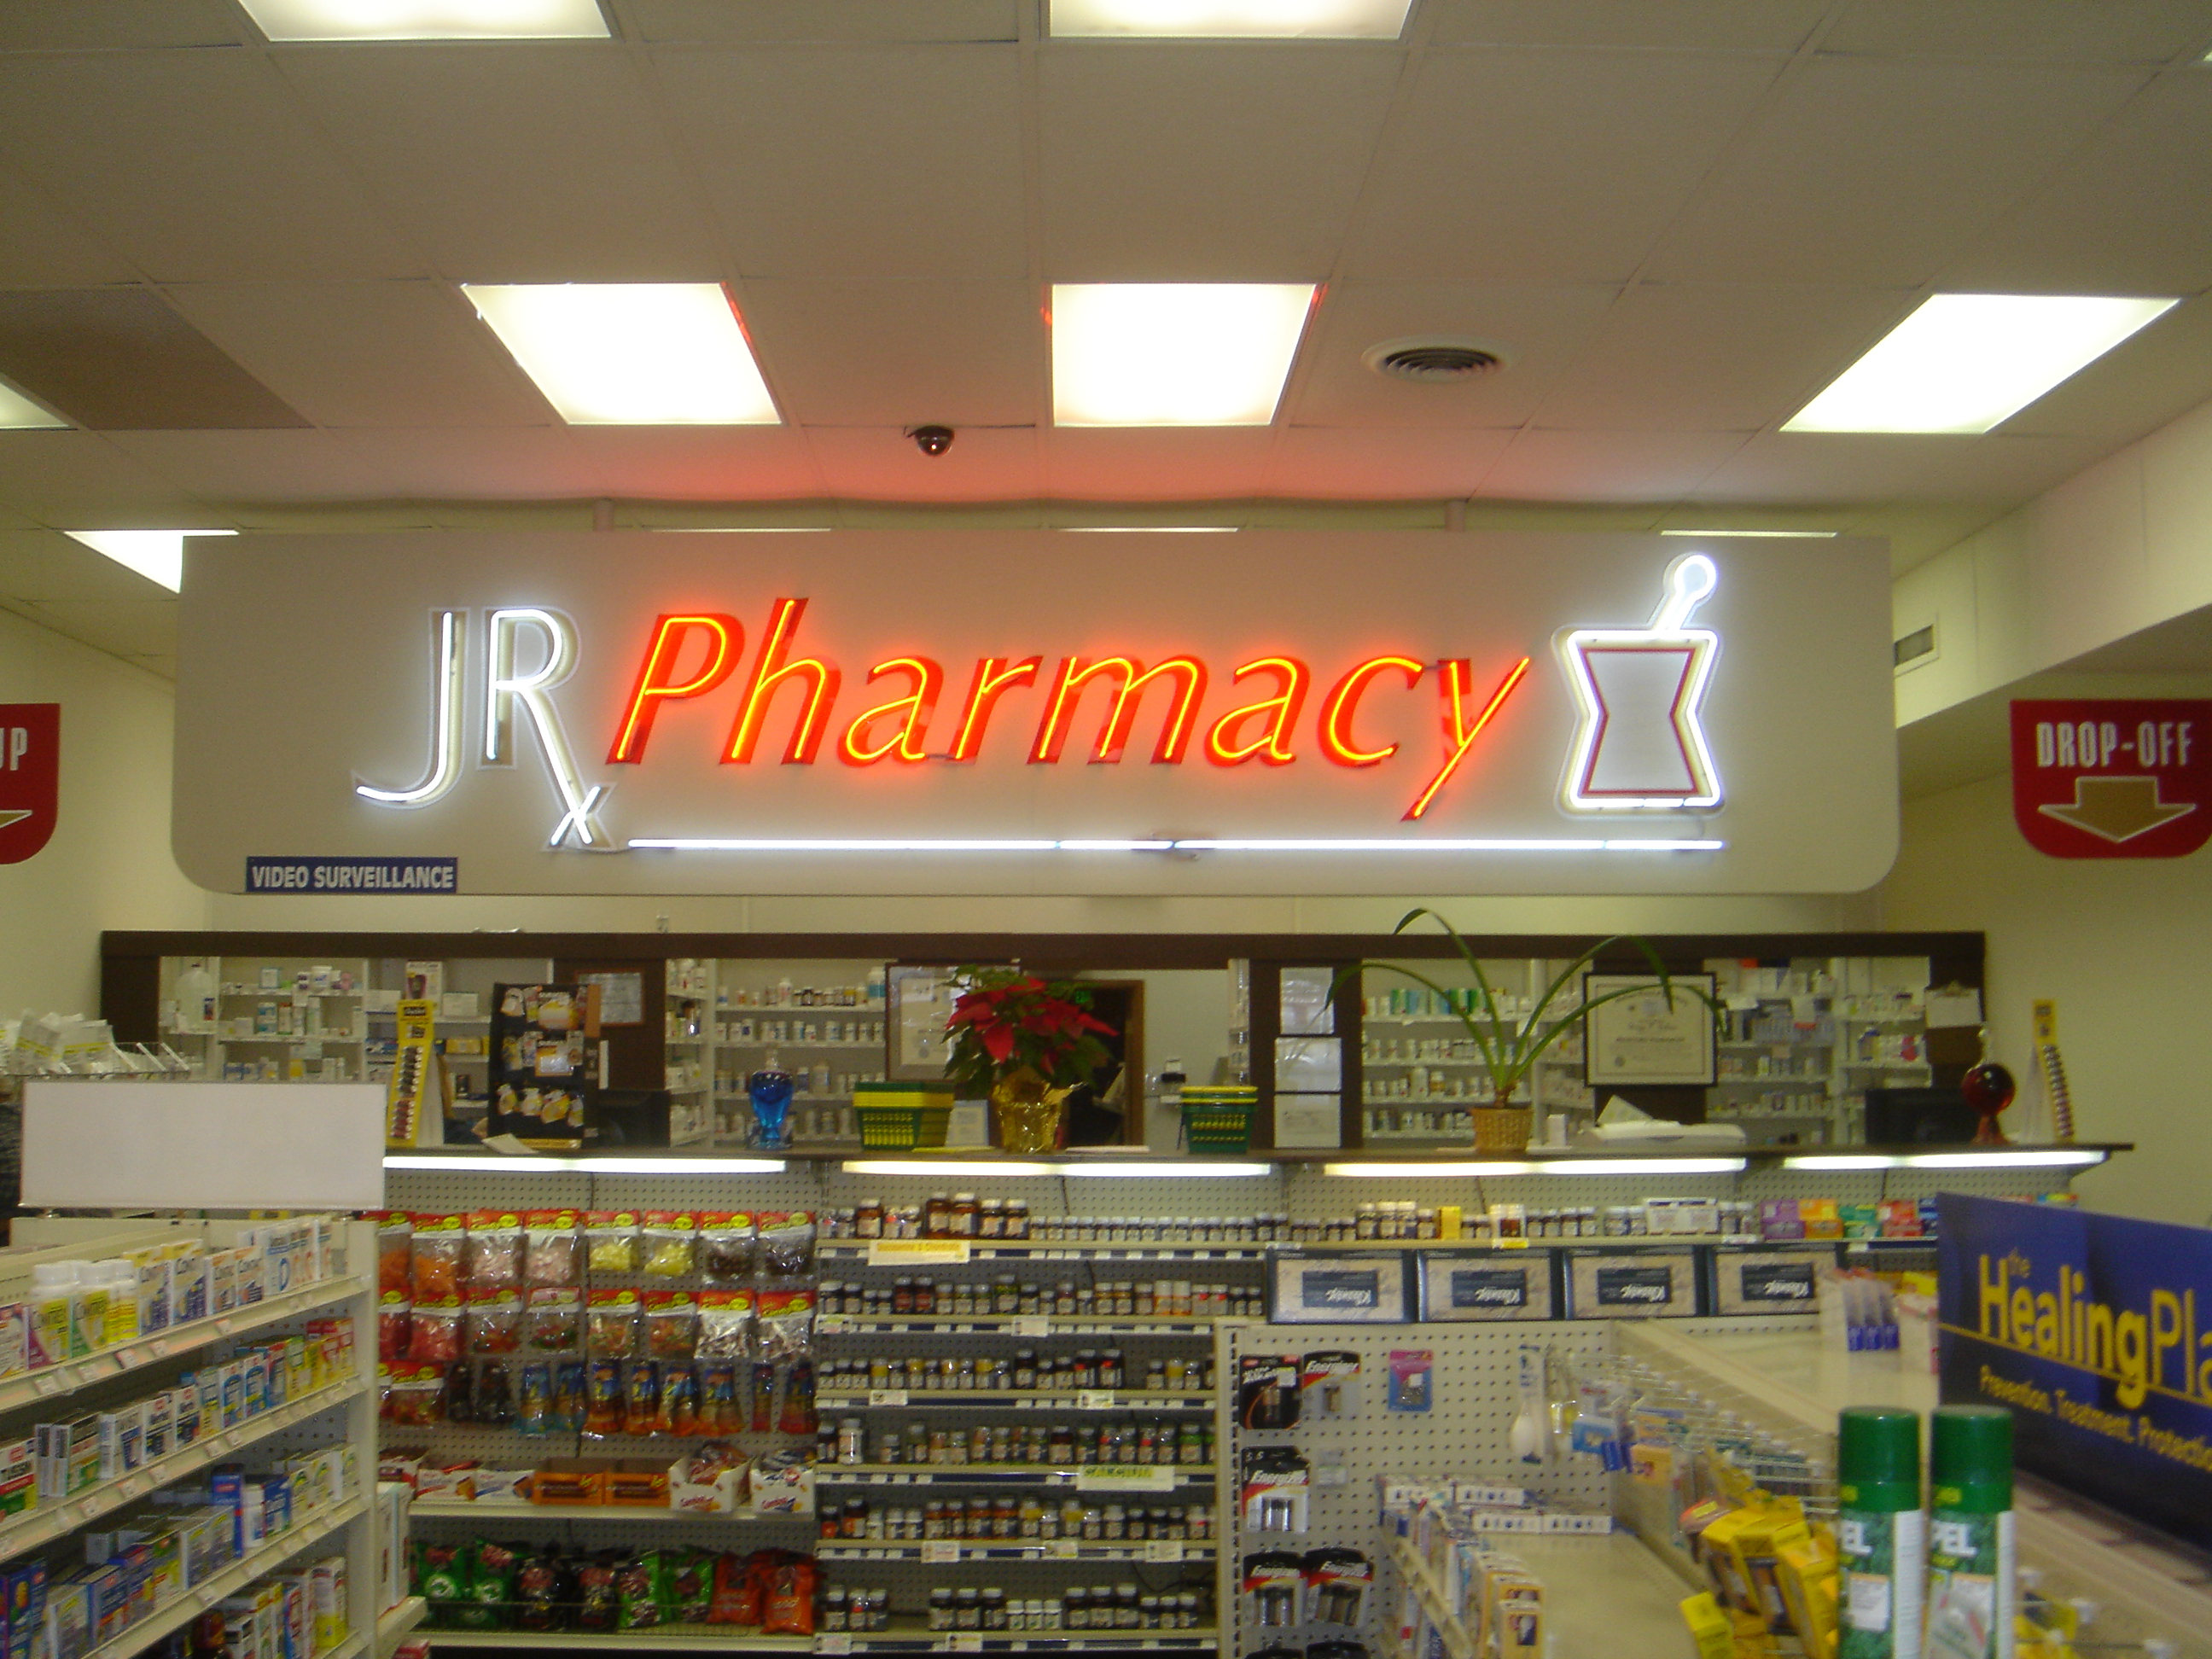 JR Pharmacy Neon